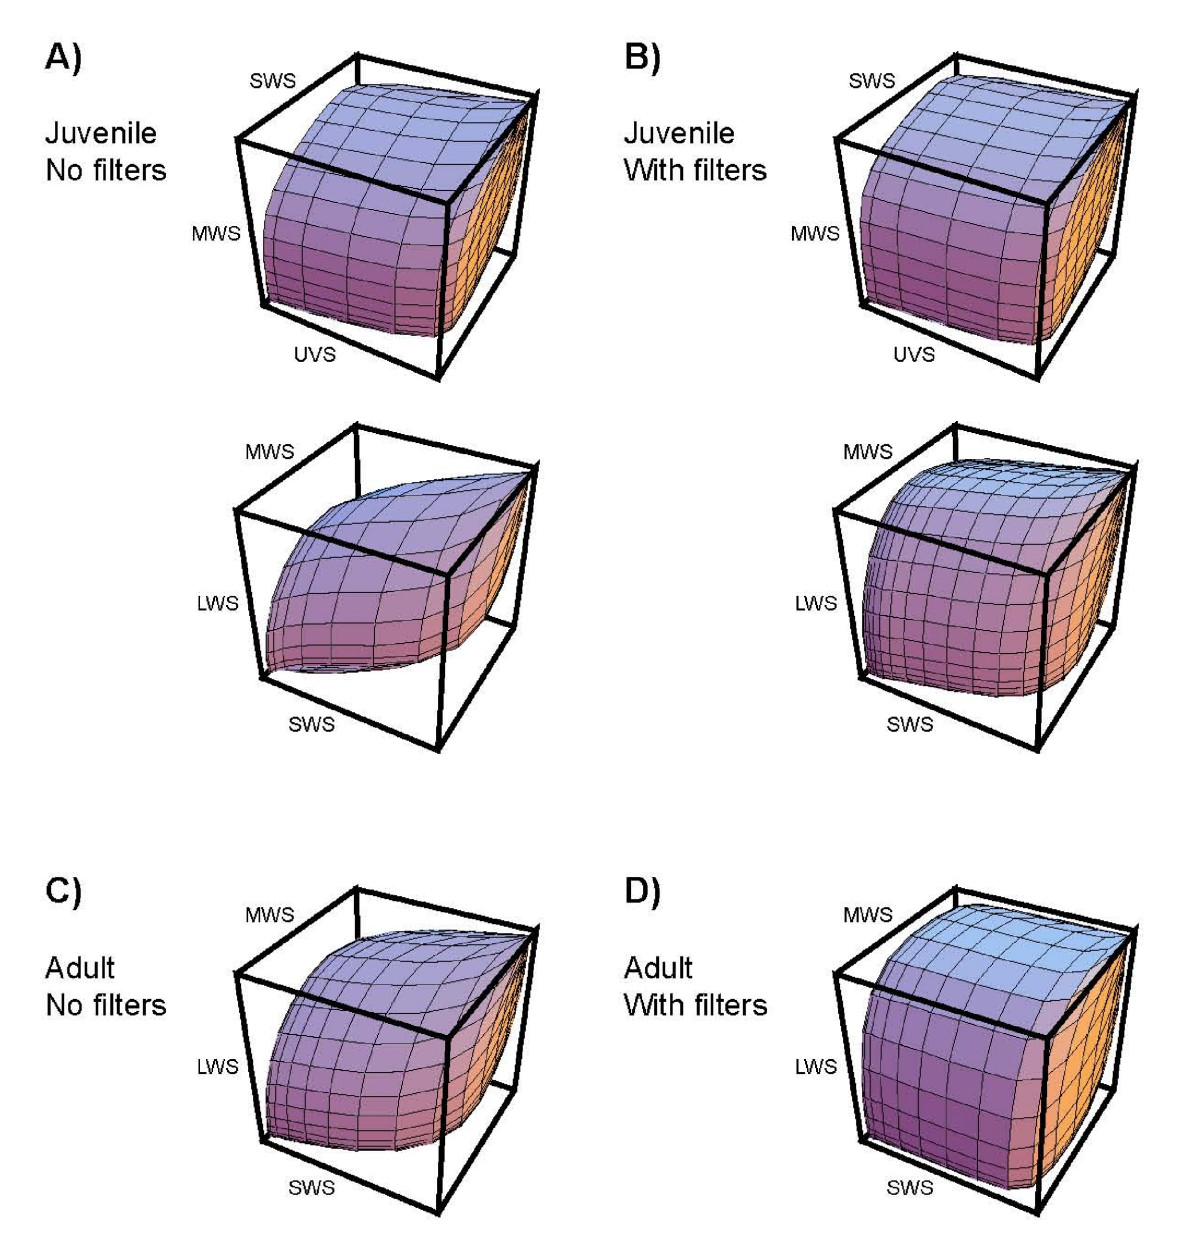 http://static-content.springer.com/image/art%3A10.1186%2F1472-6785-8-21/MediaObjects/12898_2008_Article_109_Fig3_HTML.jpg